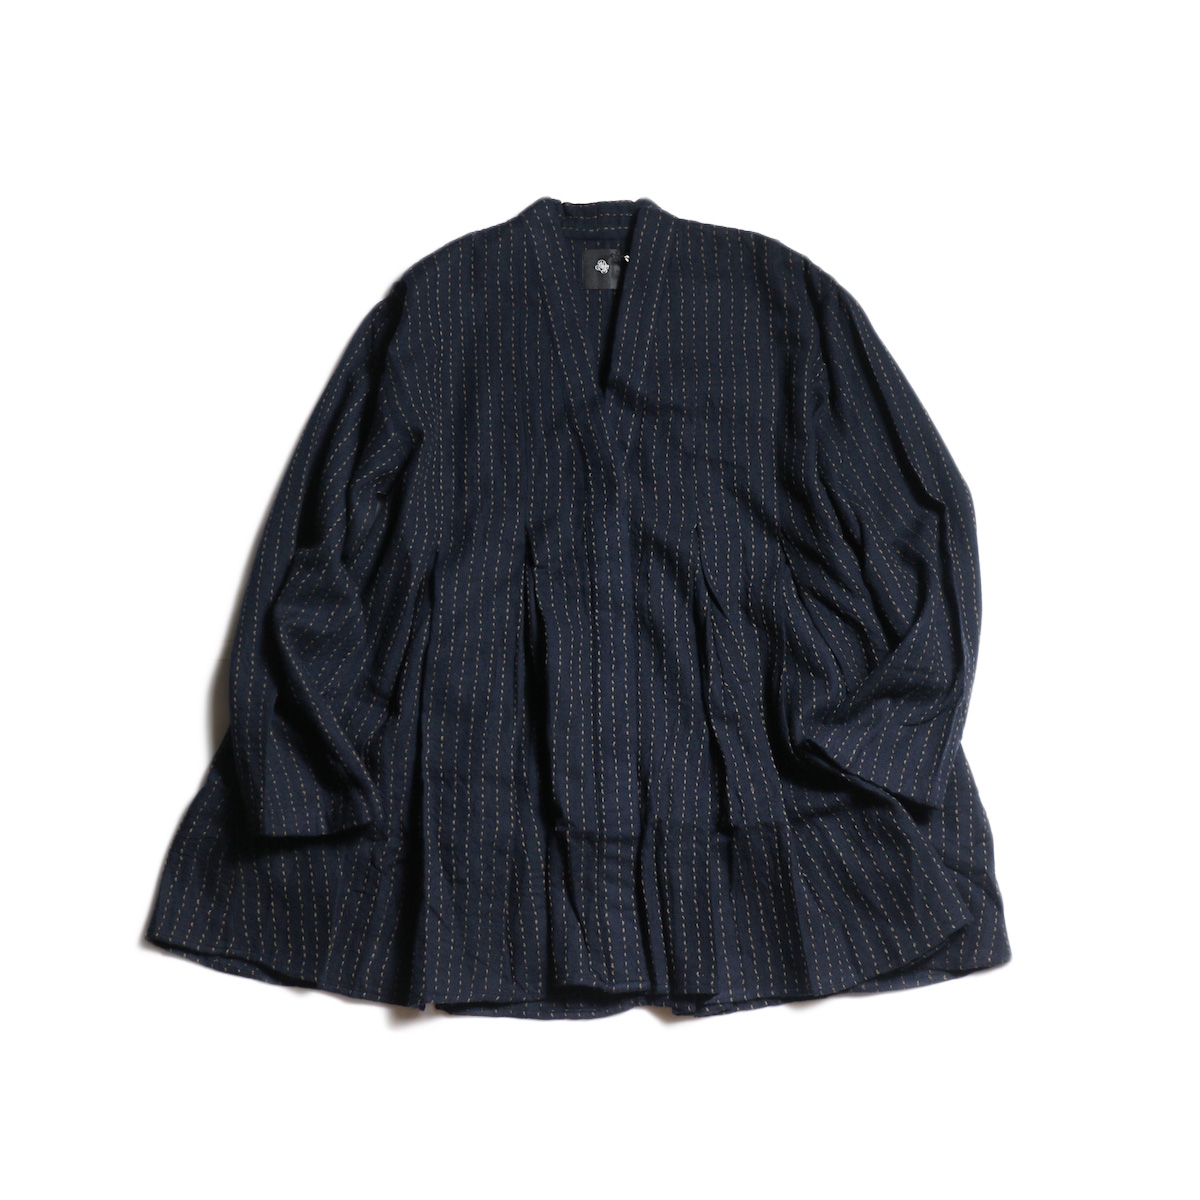 maison de soil / INVERTED PLEAT V-NECK SHIRT (Dk.Navy/Brown Stitch)